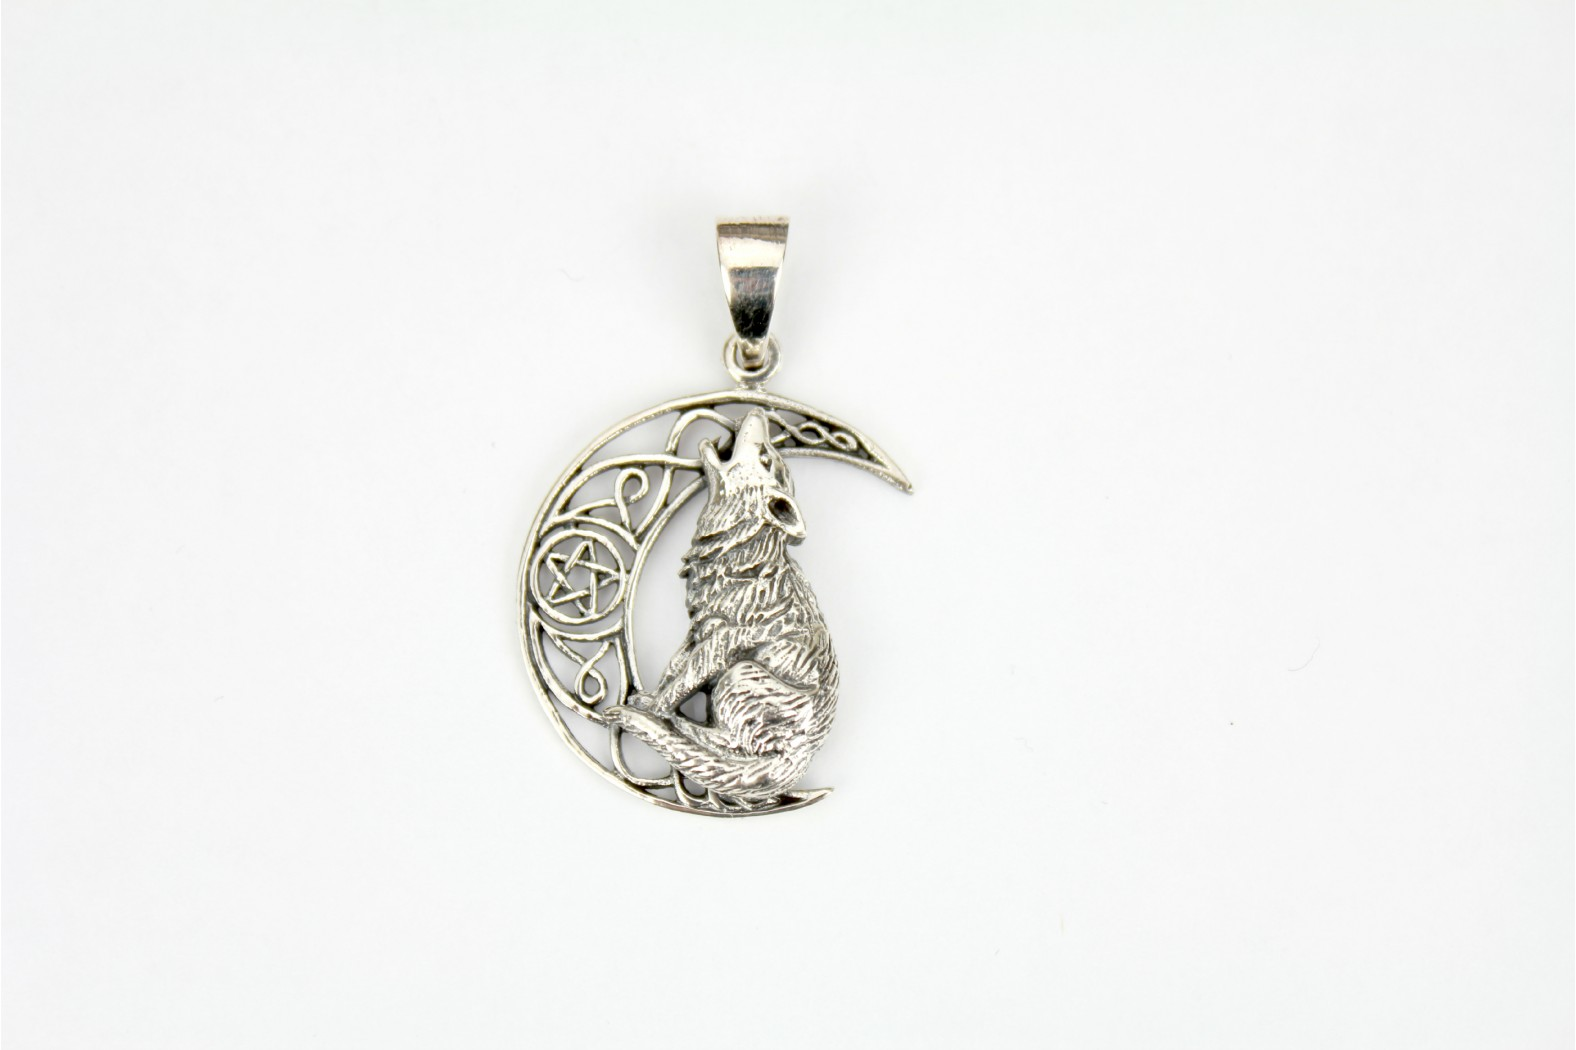 Wolf on moon style set on silver detailing.